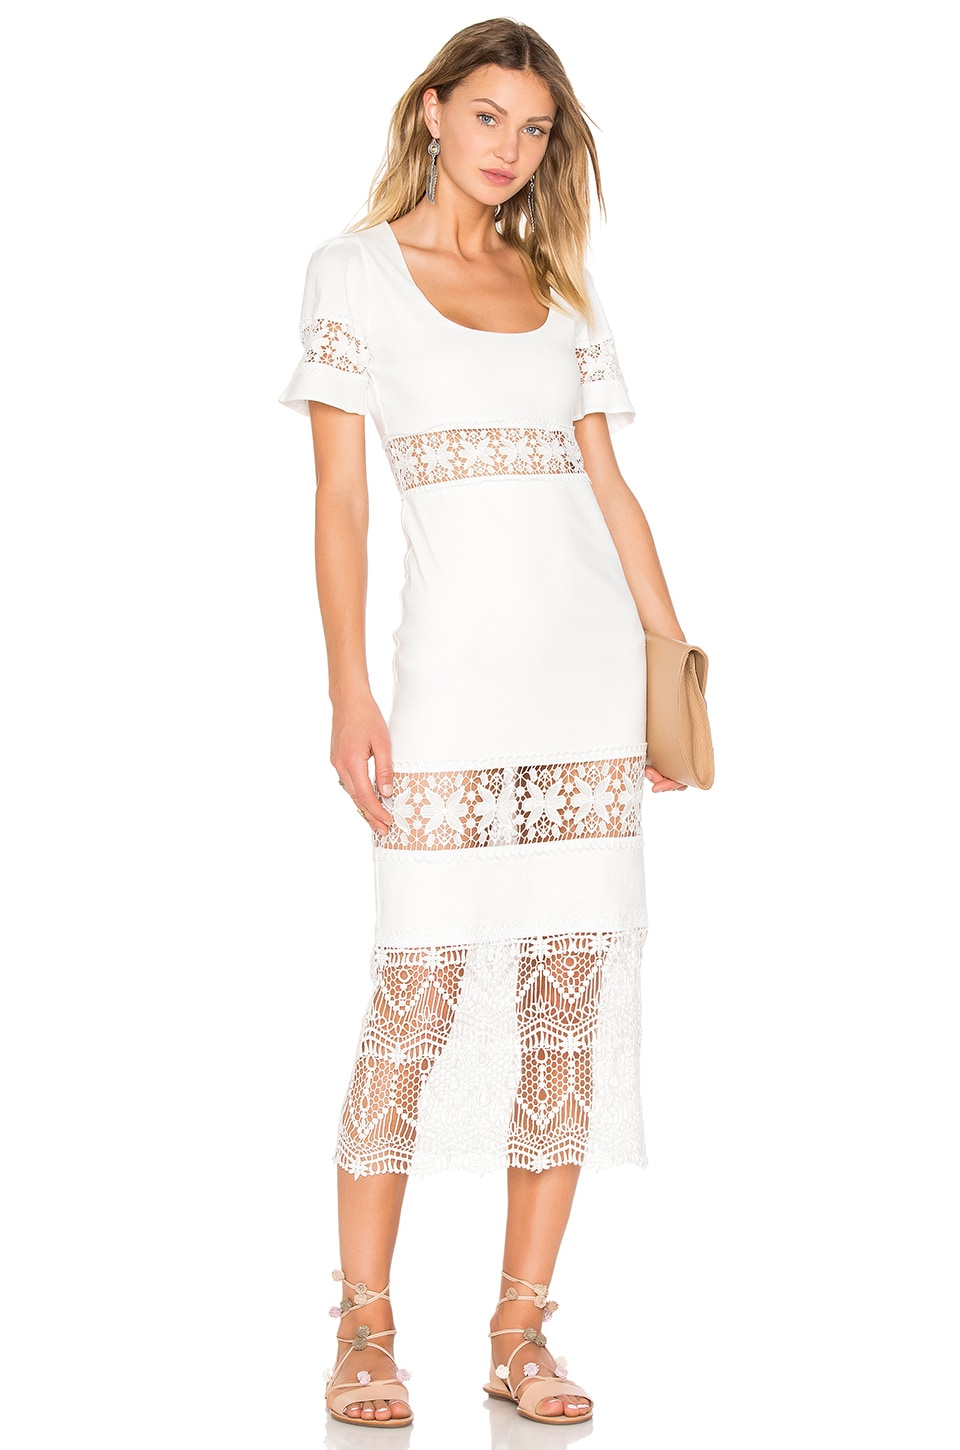 STONE_COLD_FOX Dryden Dress in White